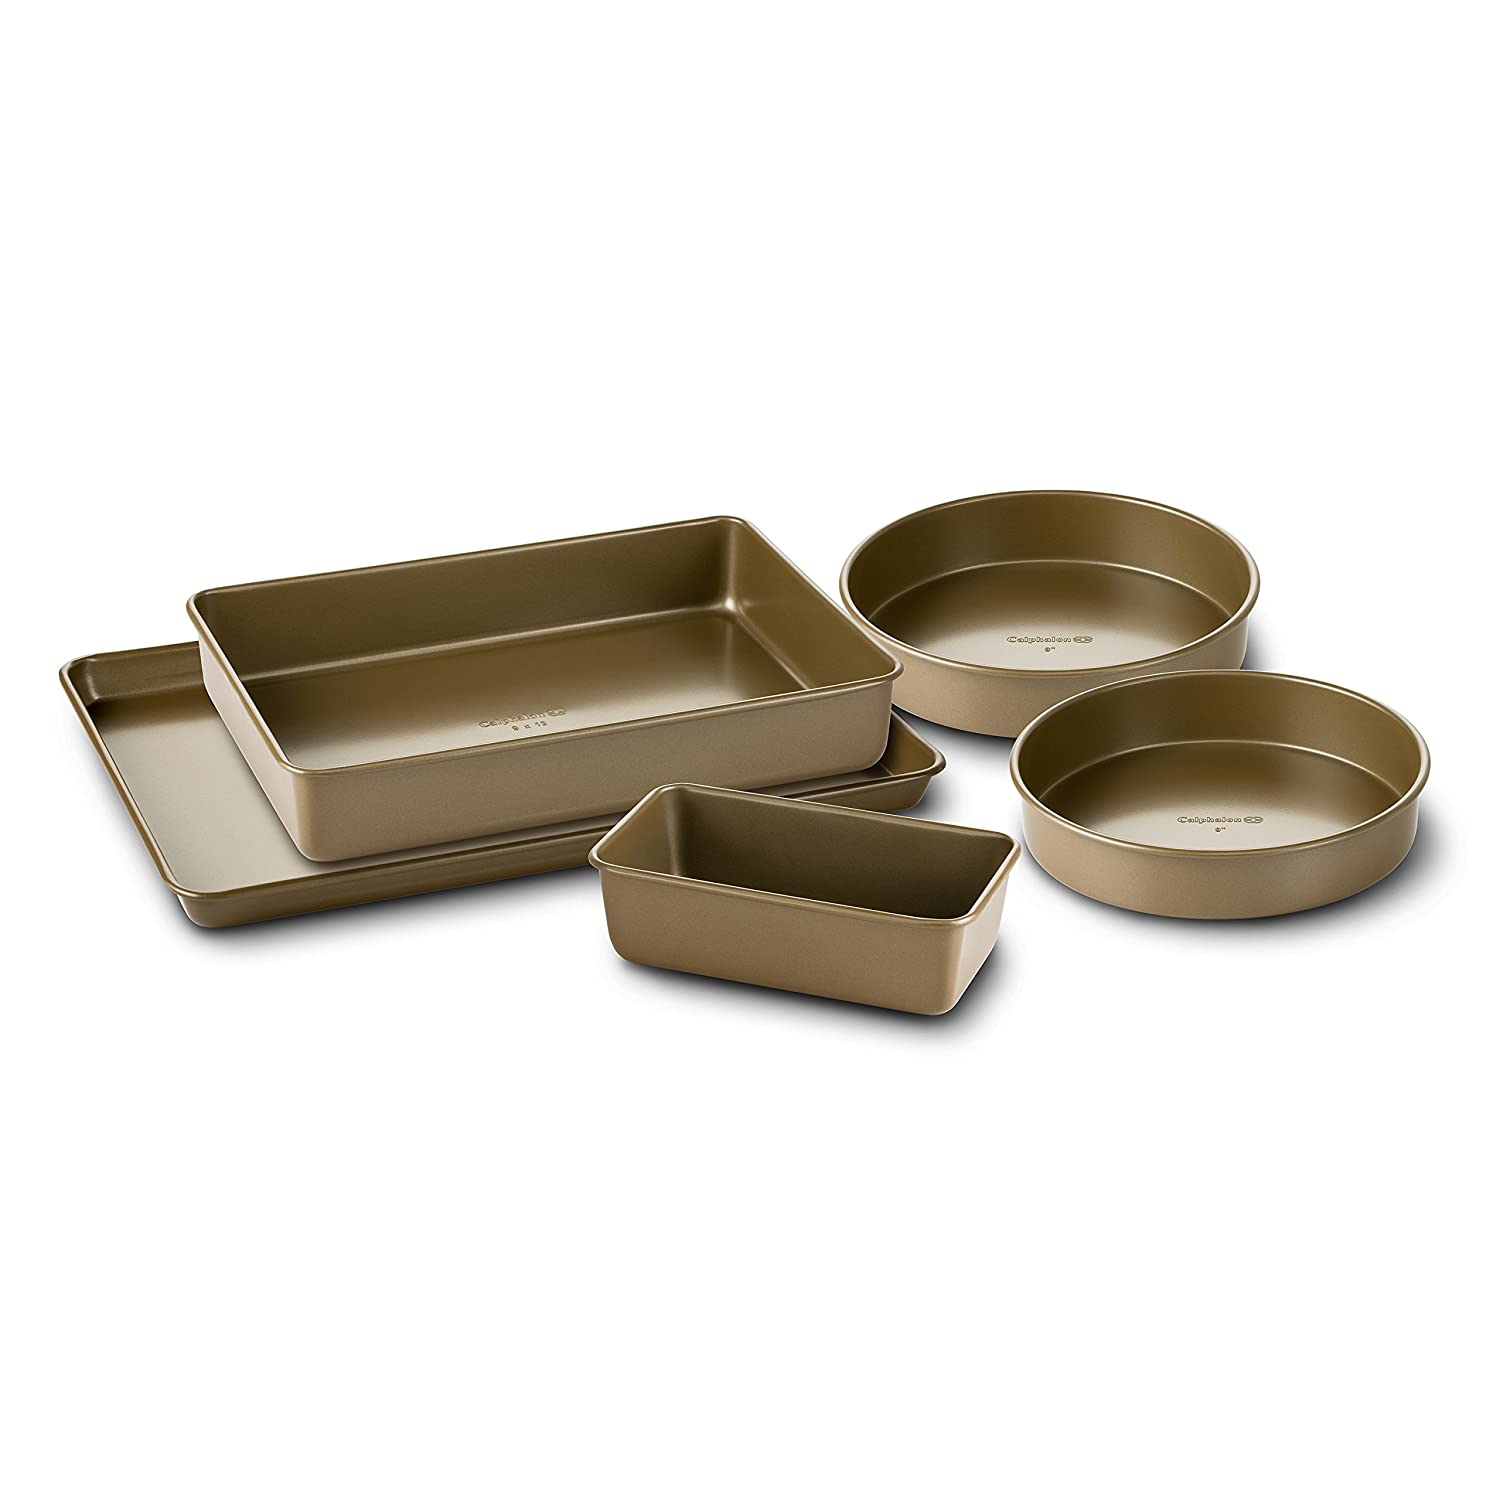 Simply Calphalon Nonstick Bakeware, Set, 5-Piece 1802193